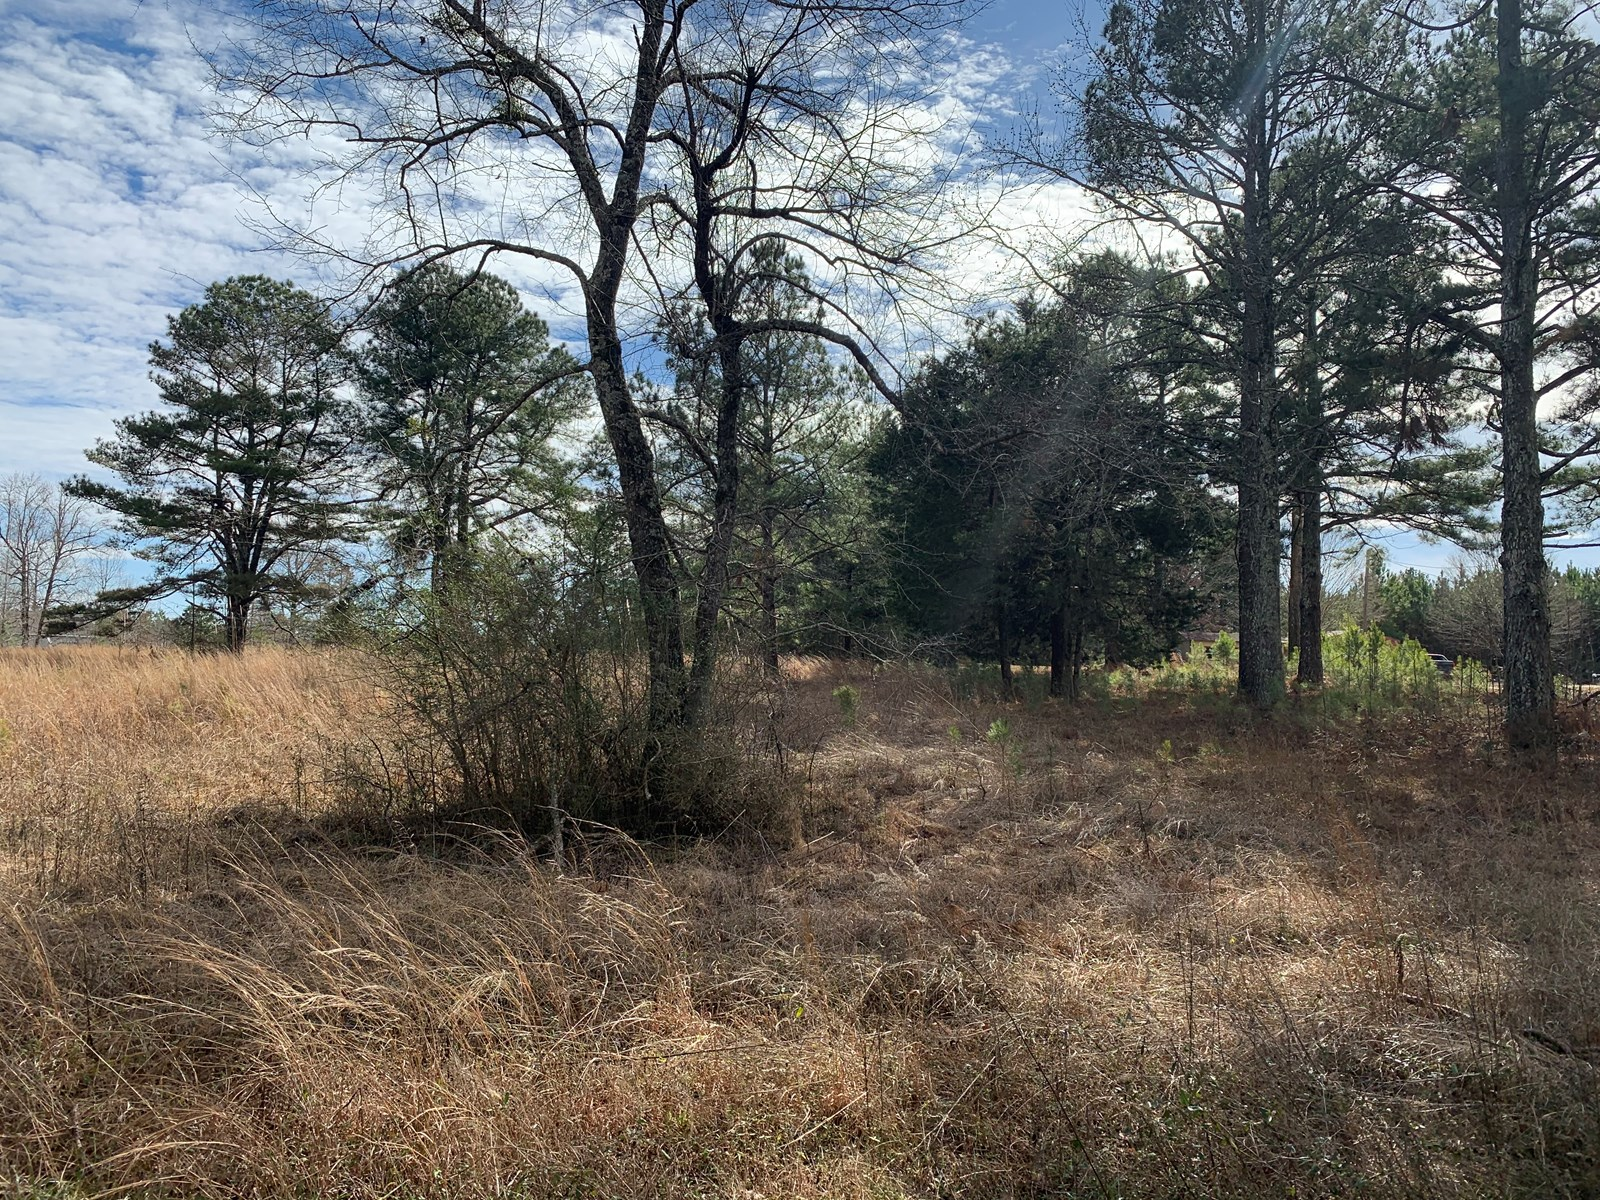 APPROX 3.8 ACRES FOR SALE IN TENNESSEE CLOSE TO TN RIVER